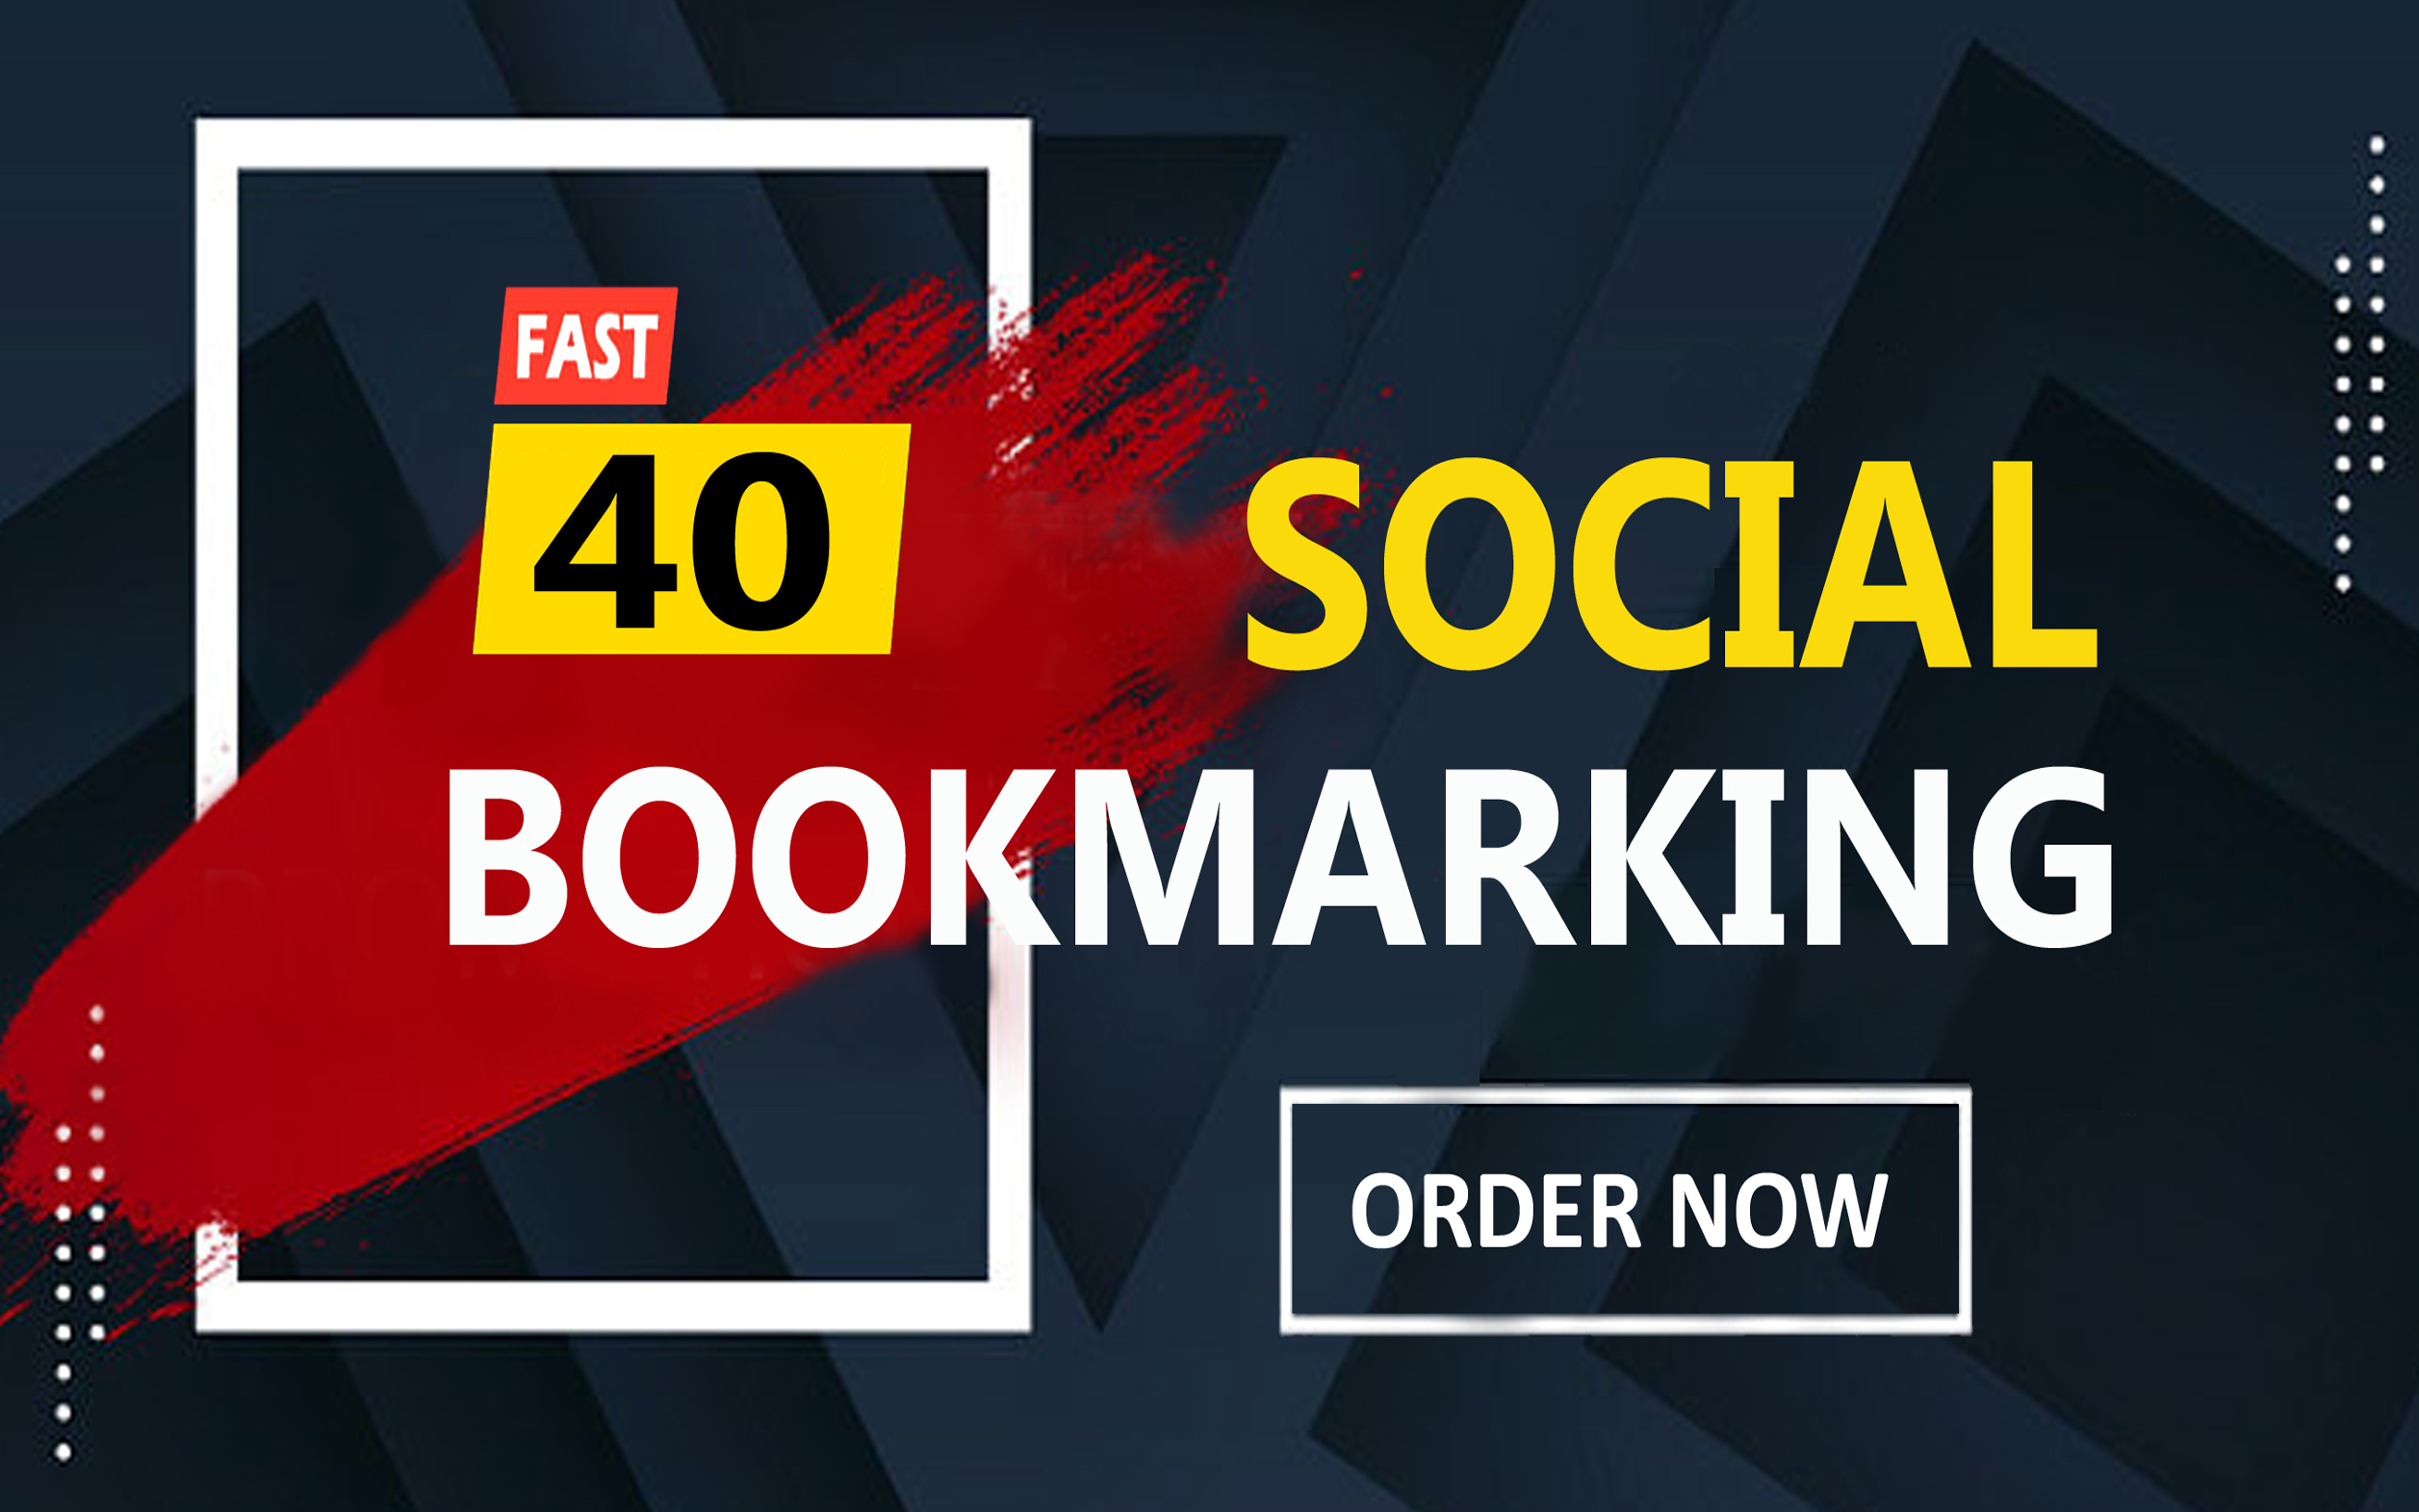 i will provide 40 high quality social bookmarking with high DA /PA and DR